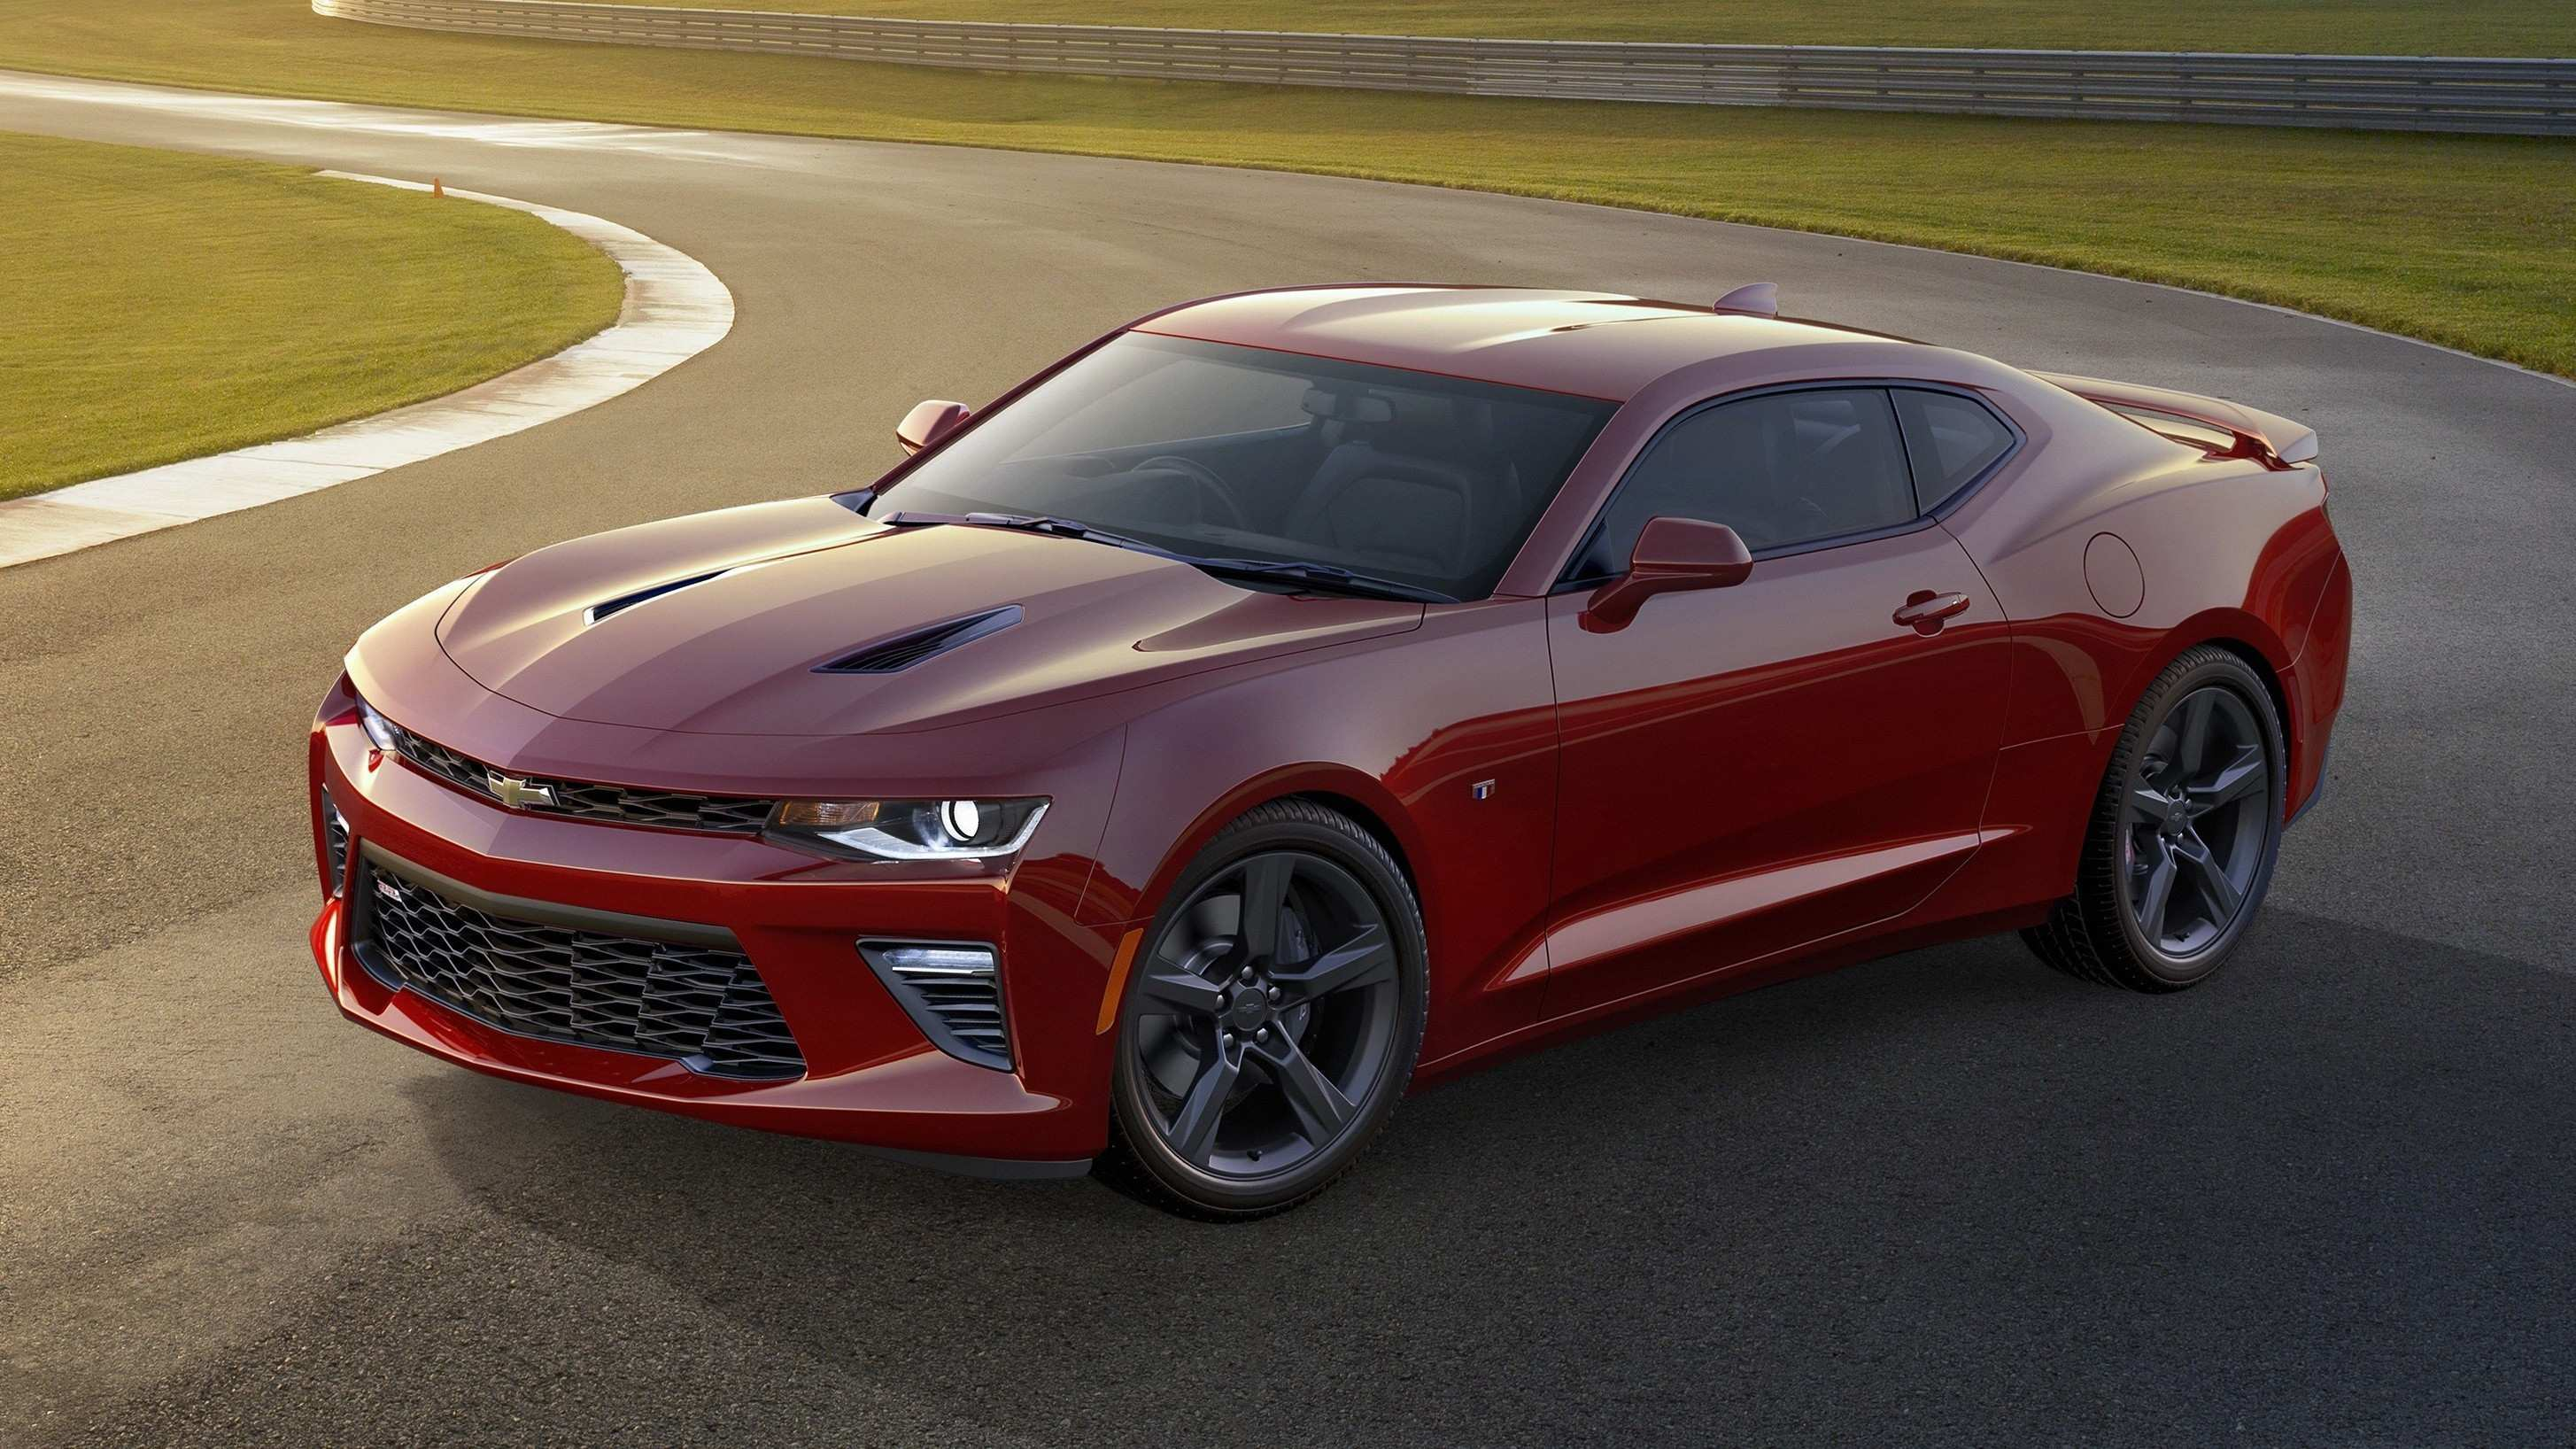 68 The Best 2019 Chevy Camaro Competition Arrival History